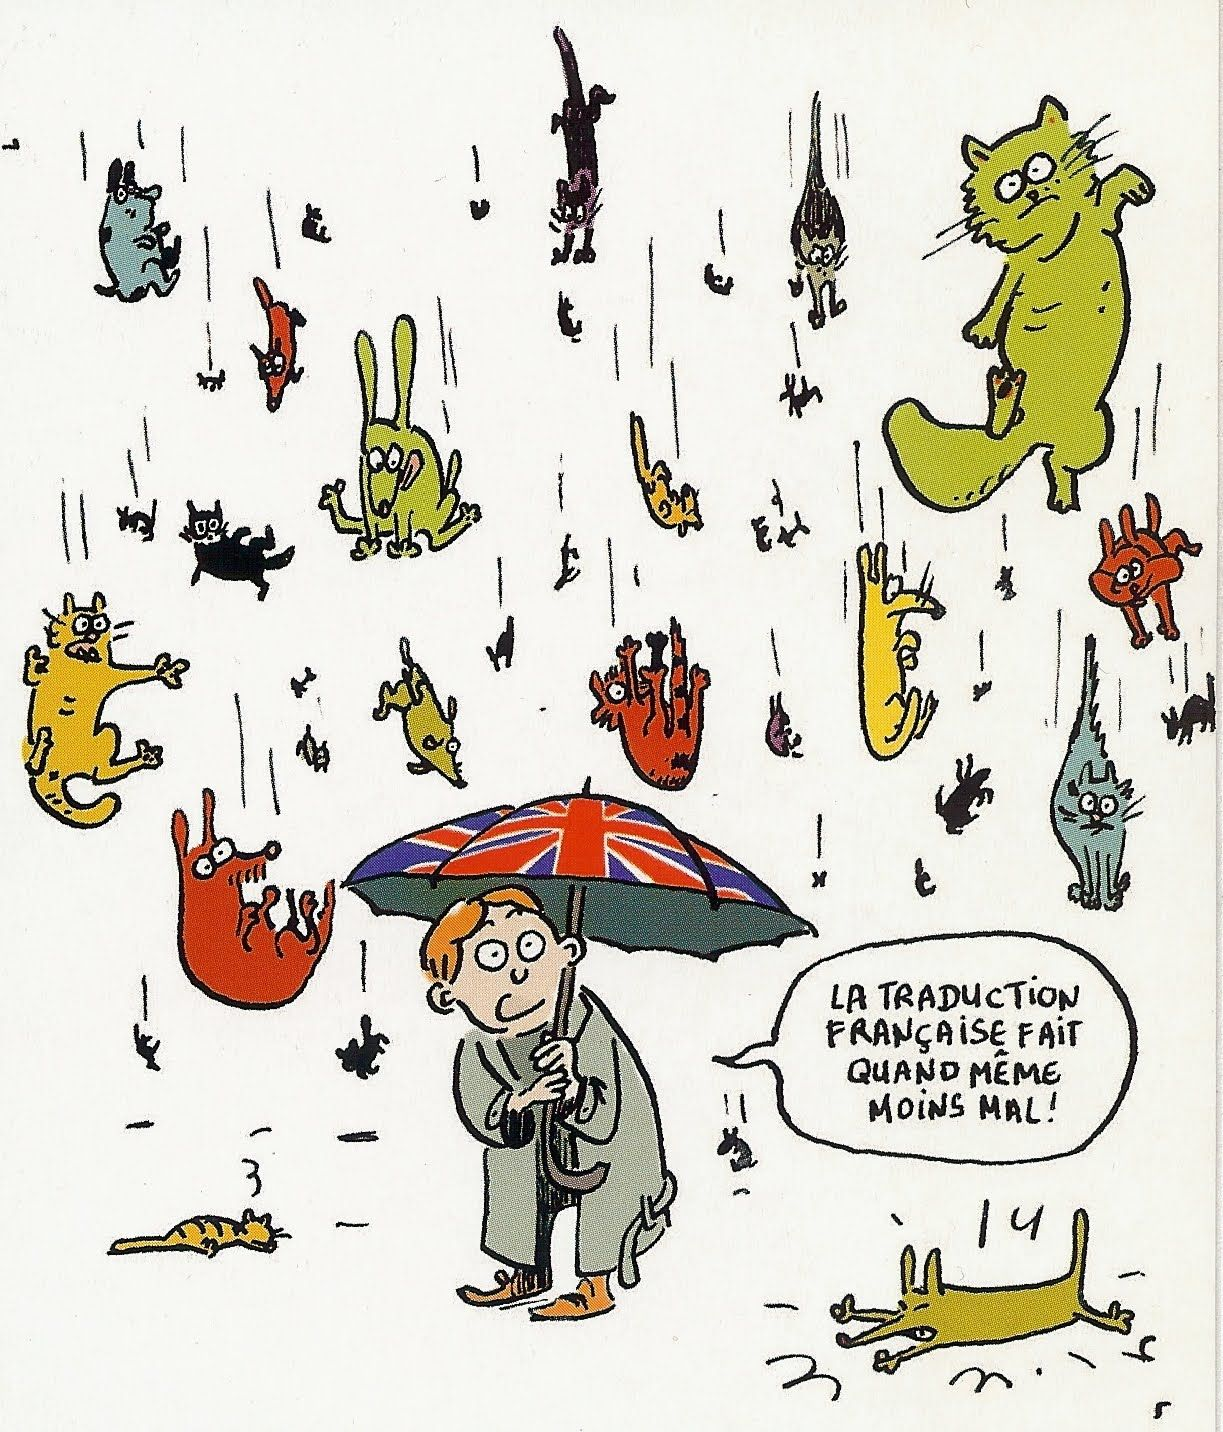 Its Raining Cats And Dogs Jpg 1223 1432 Raining Cats And Dogs